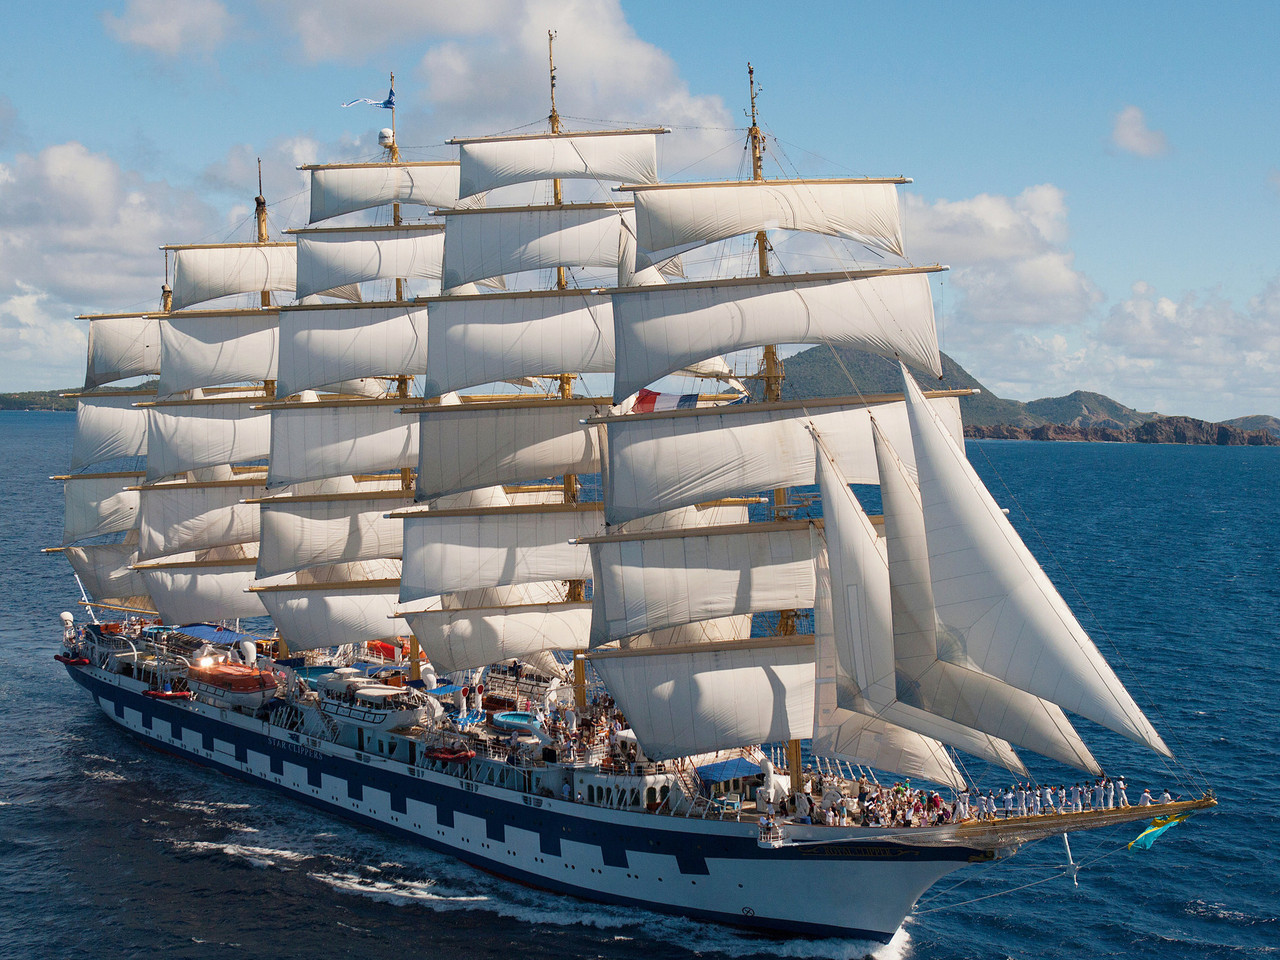 https://www.oceando.de/img/kreuzfahrtschiff/large/royal-clipper_203_3530.jpg